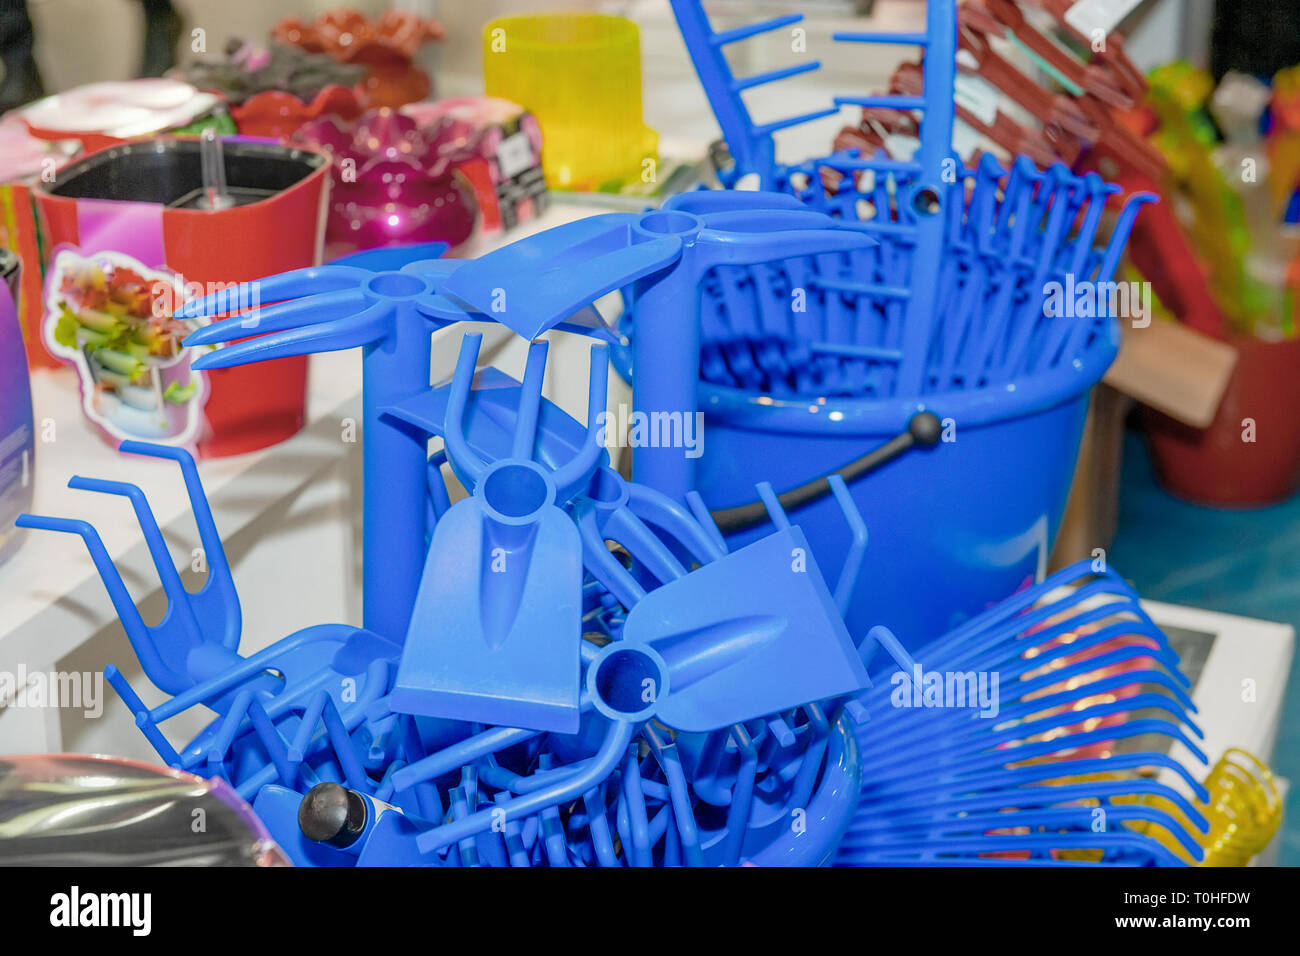 Blue rake Plastic products, plant care products in a supermarket display case. Recycled plastic. - Stock Image